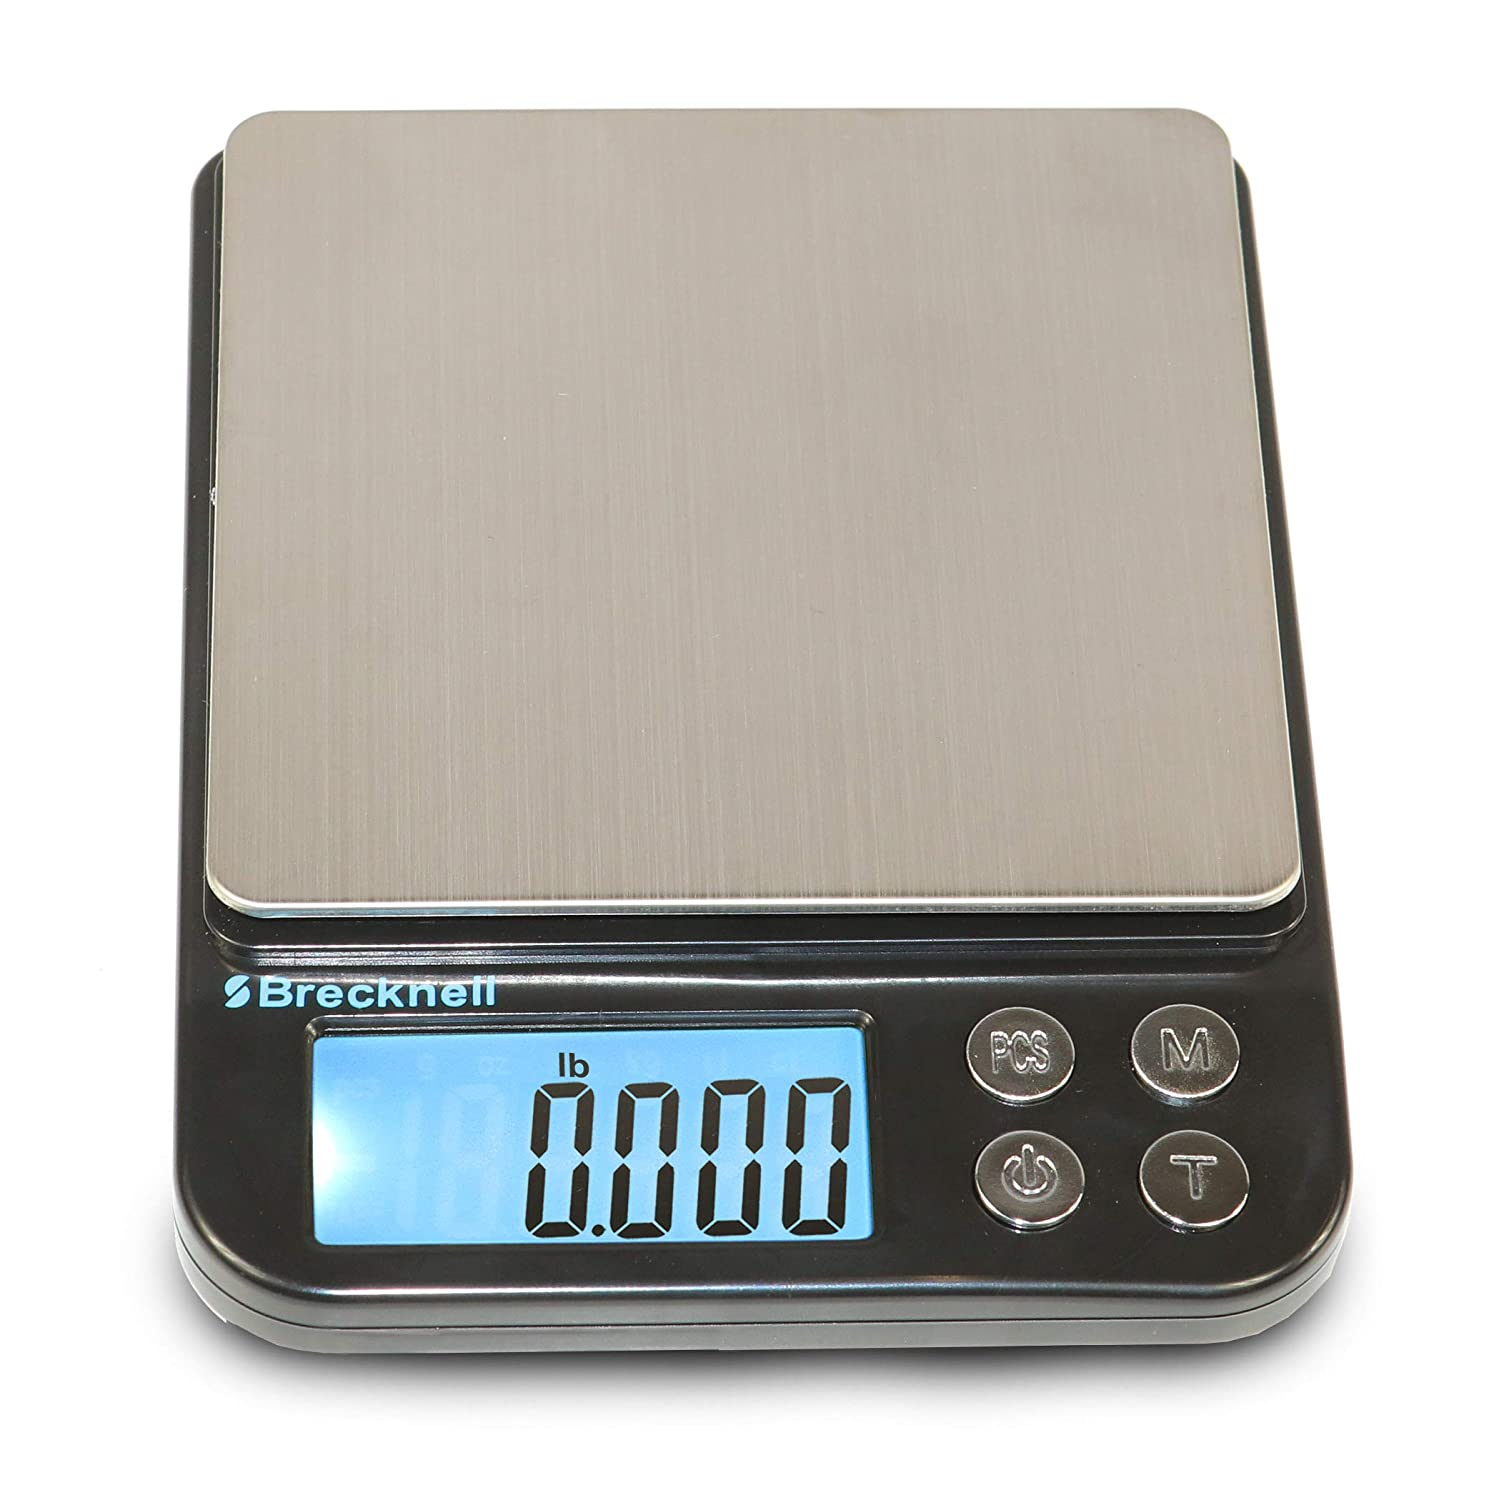 Sale Special Price Brecknell EPB Mesa Mall Small Digital Pocket Scale Capac Gram 500 Balance